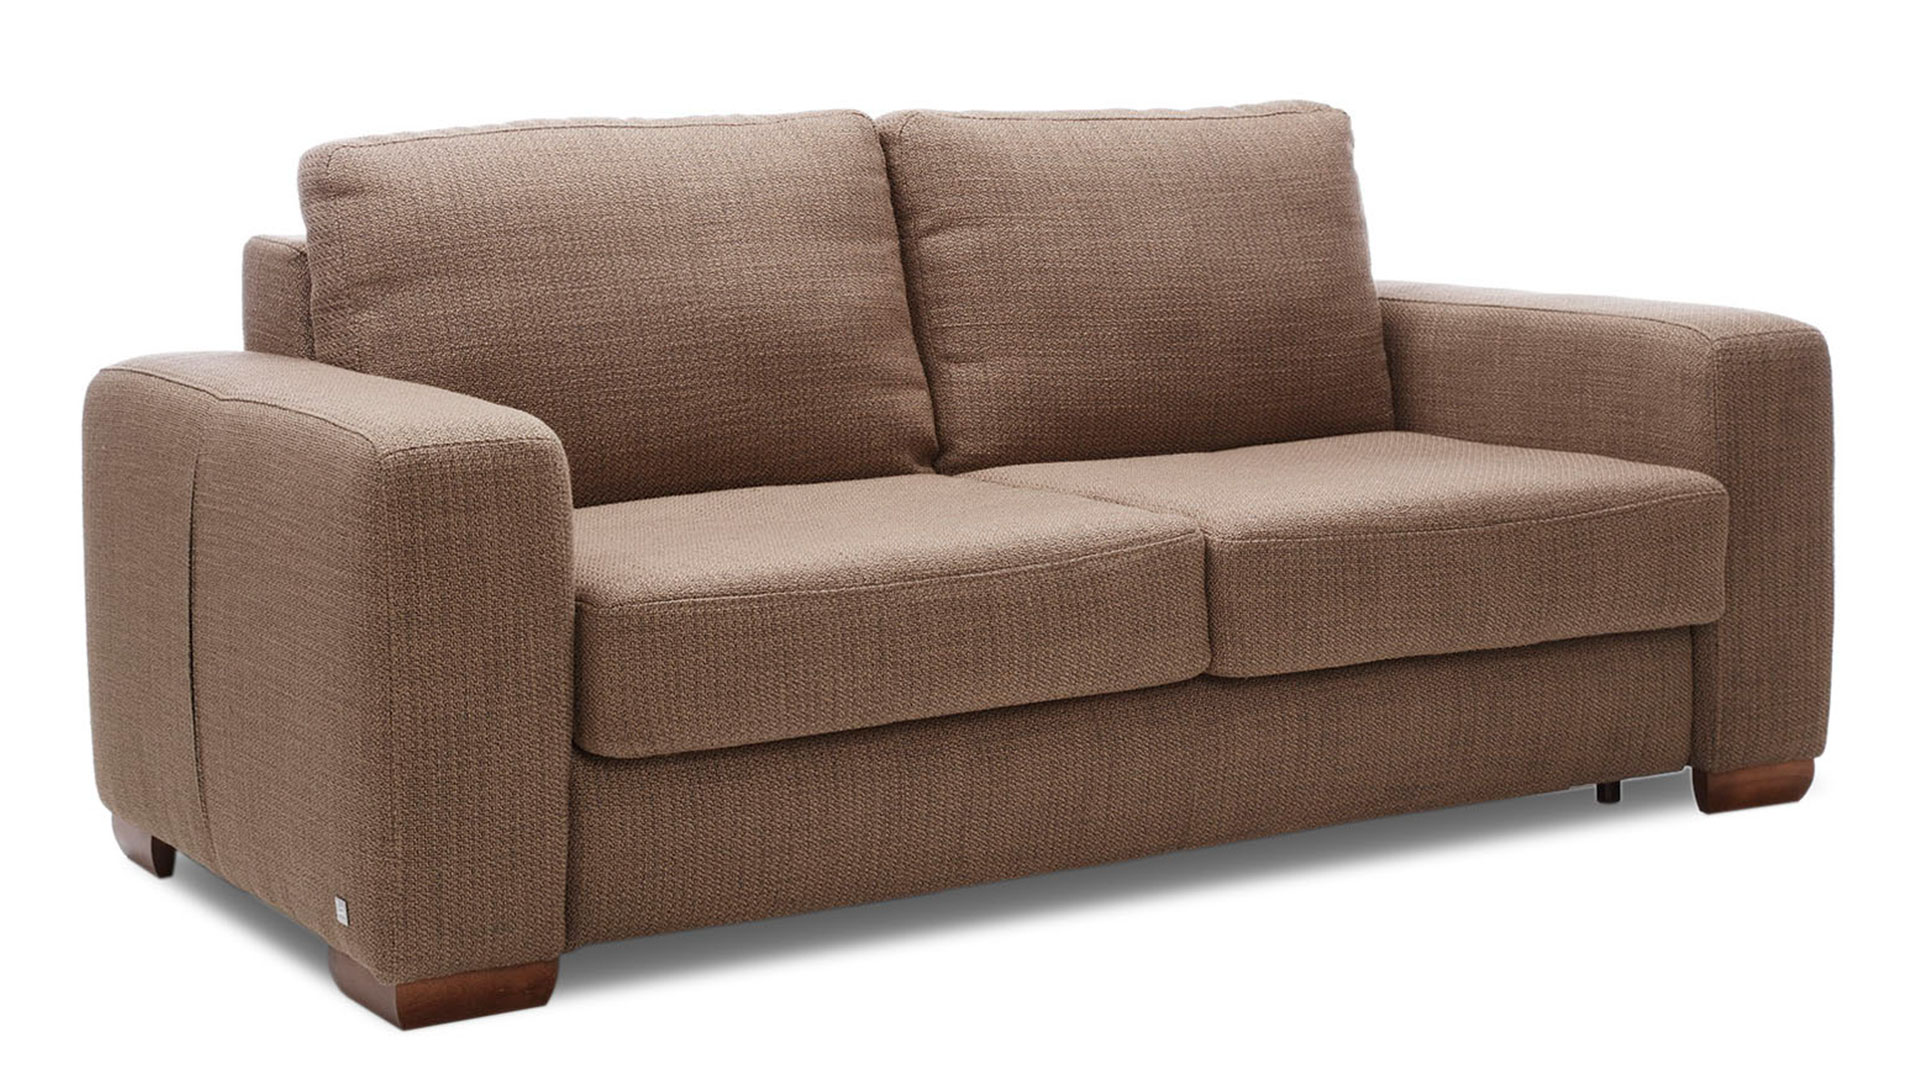 Sofa with sleeping function Space 140